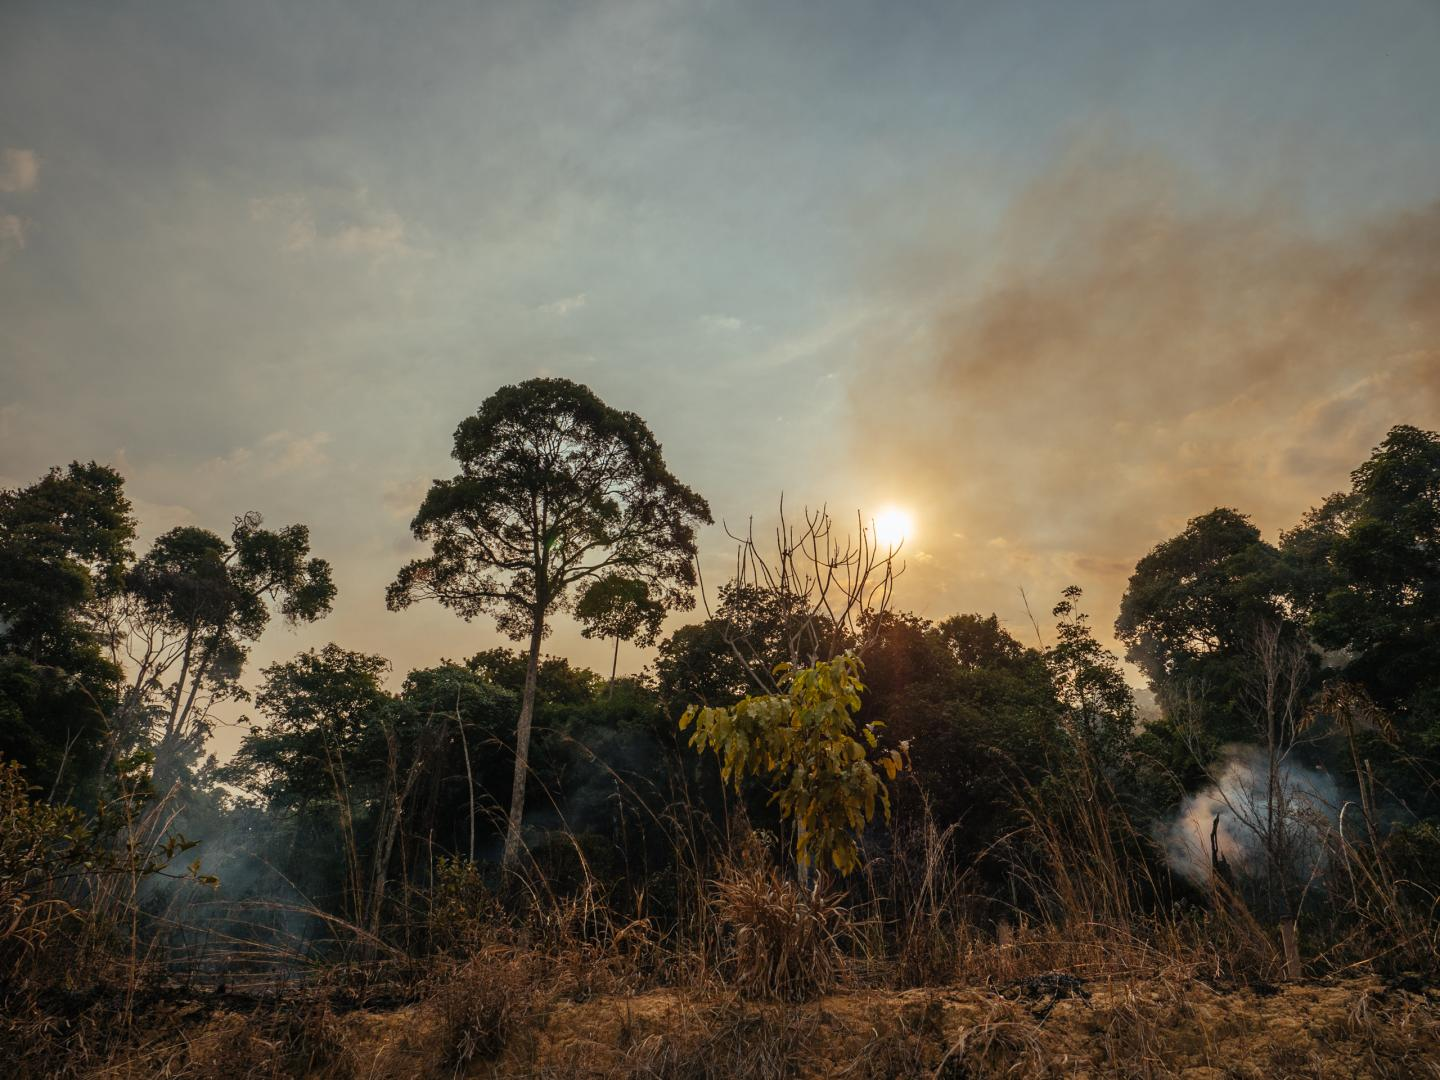 Burning Central Amazonian Forest